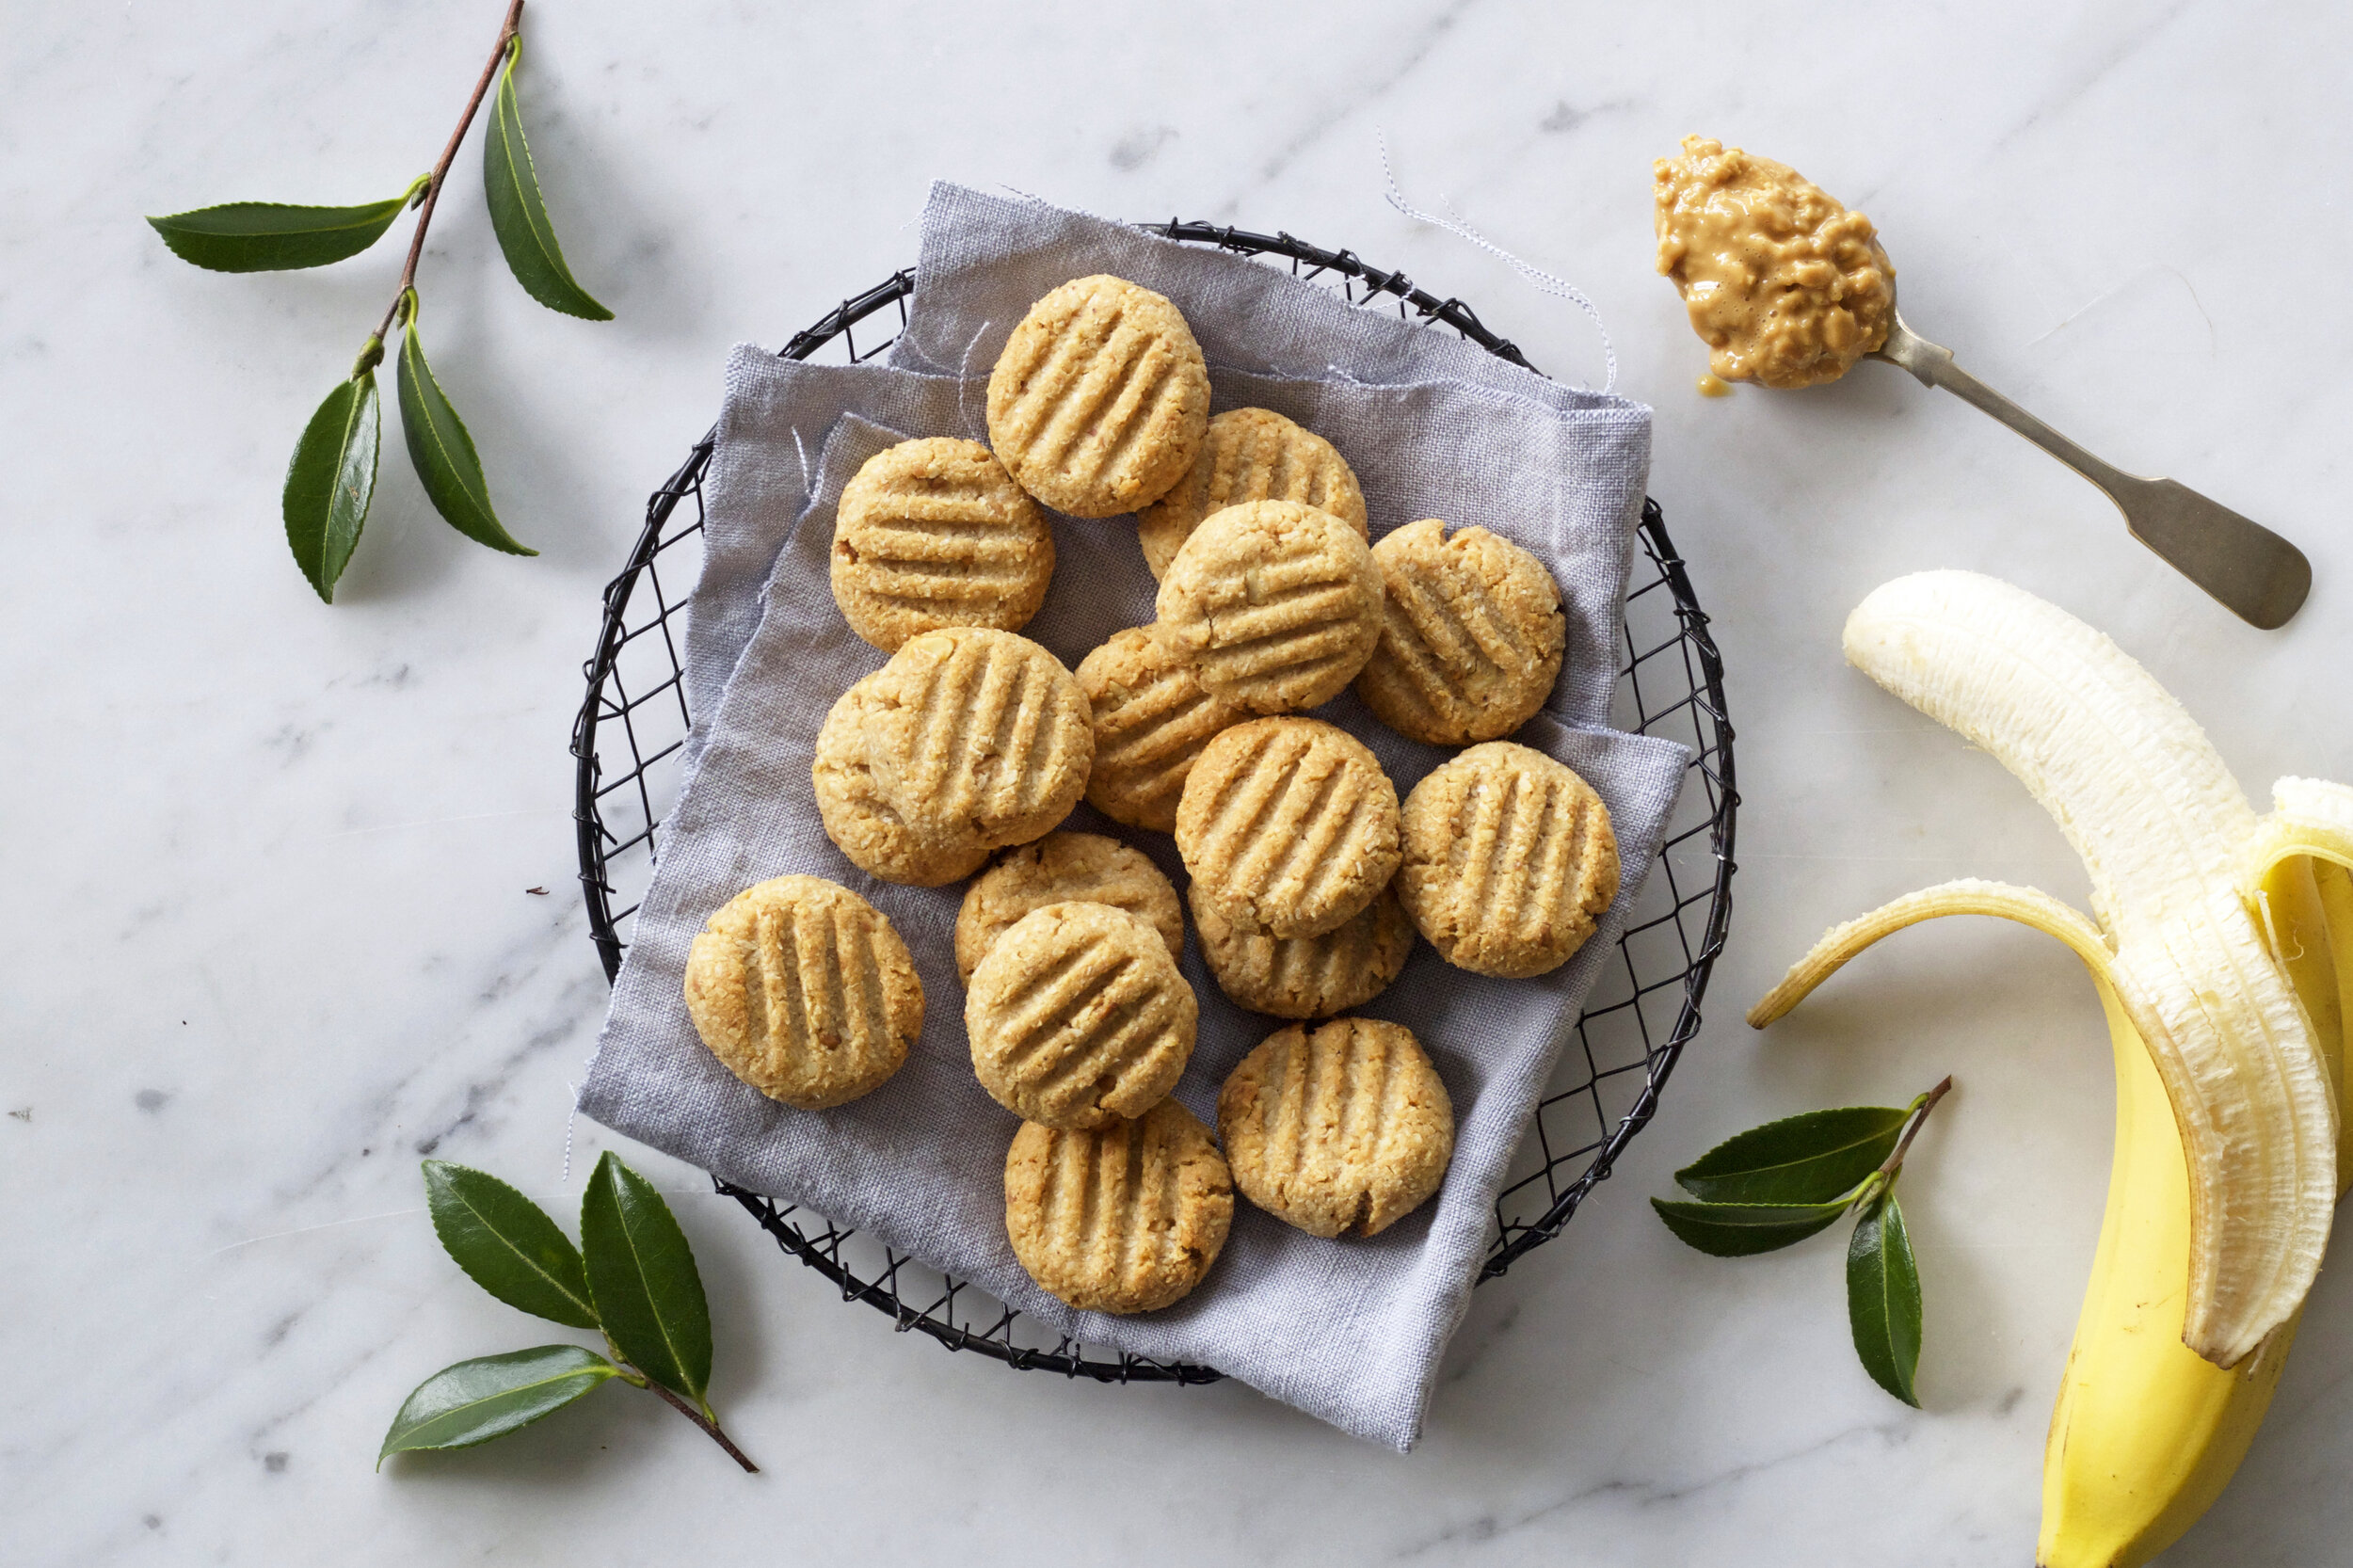 INGREDIENTS - 1 very ripe All Good Fairtrade banana – roughly mashed¾ cup good quality peanut butter1 ½ cups desiccated coconut – use organic to avoid preservatives1 tablespoon maple syrup (could also use honey)1 teaspoon good quality vanilla essencepinch sea salt